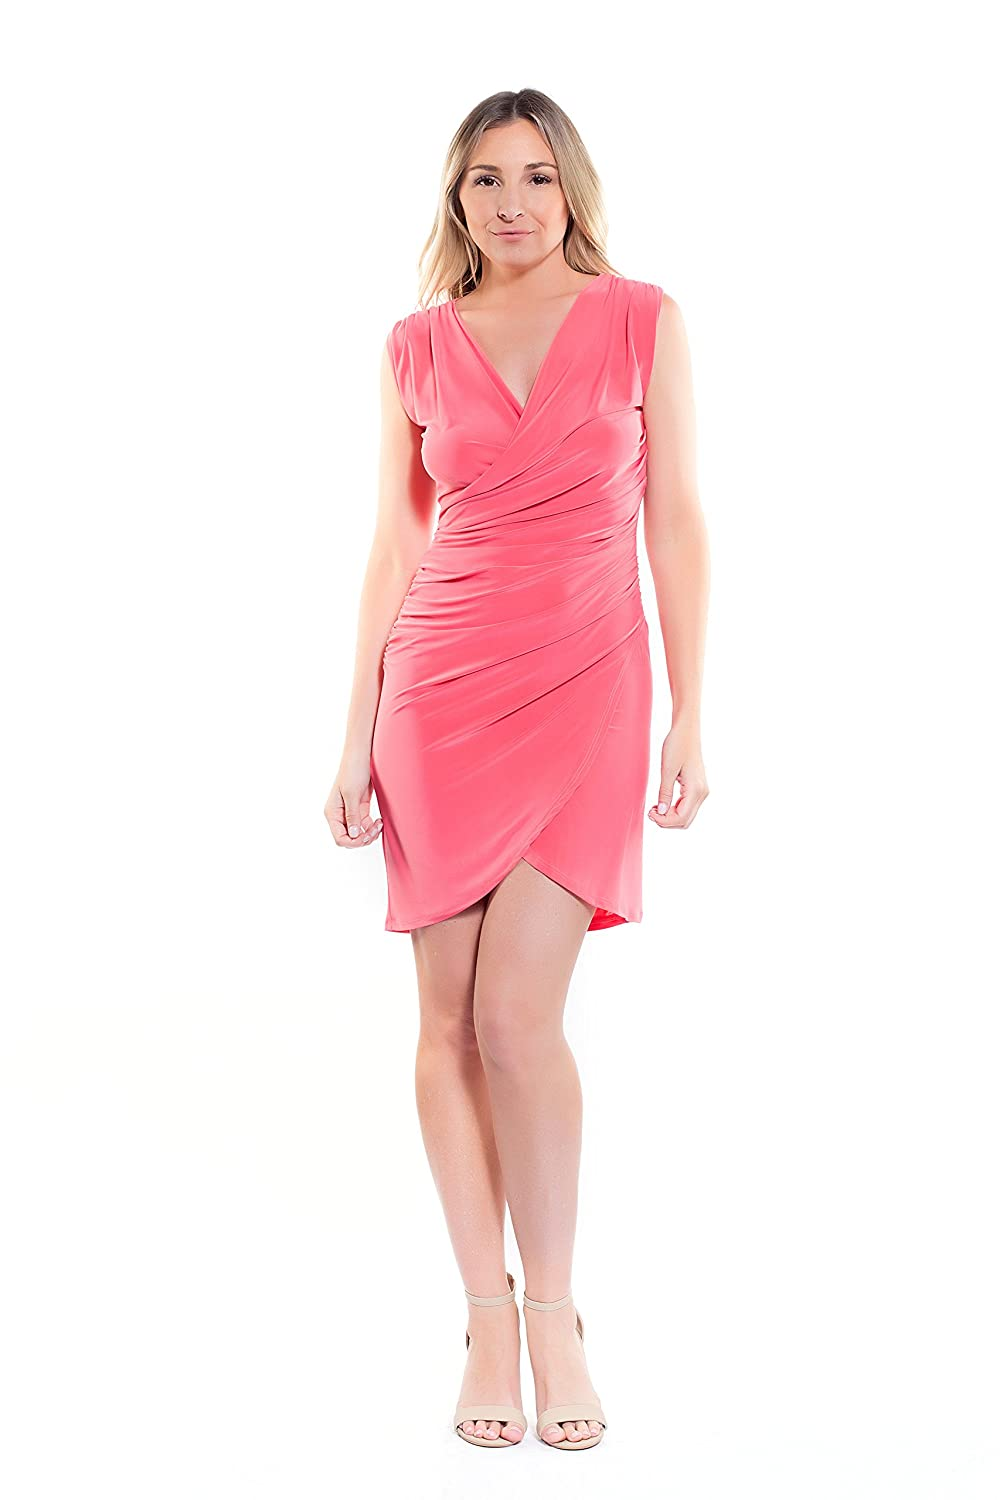 D64915 Coral Instar Mode Women's Night Out of Town Surplice Sleeveless Side Tucked Mini Dress